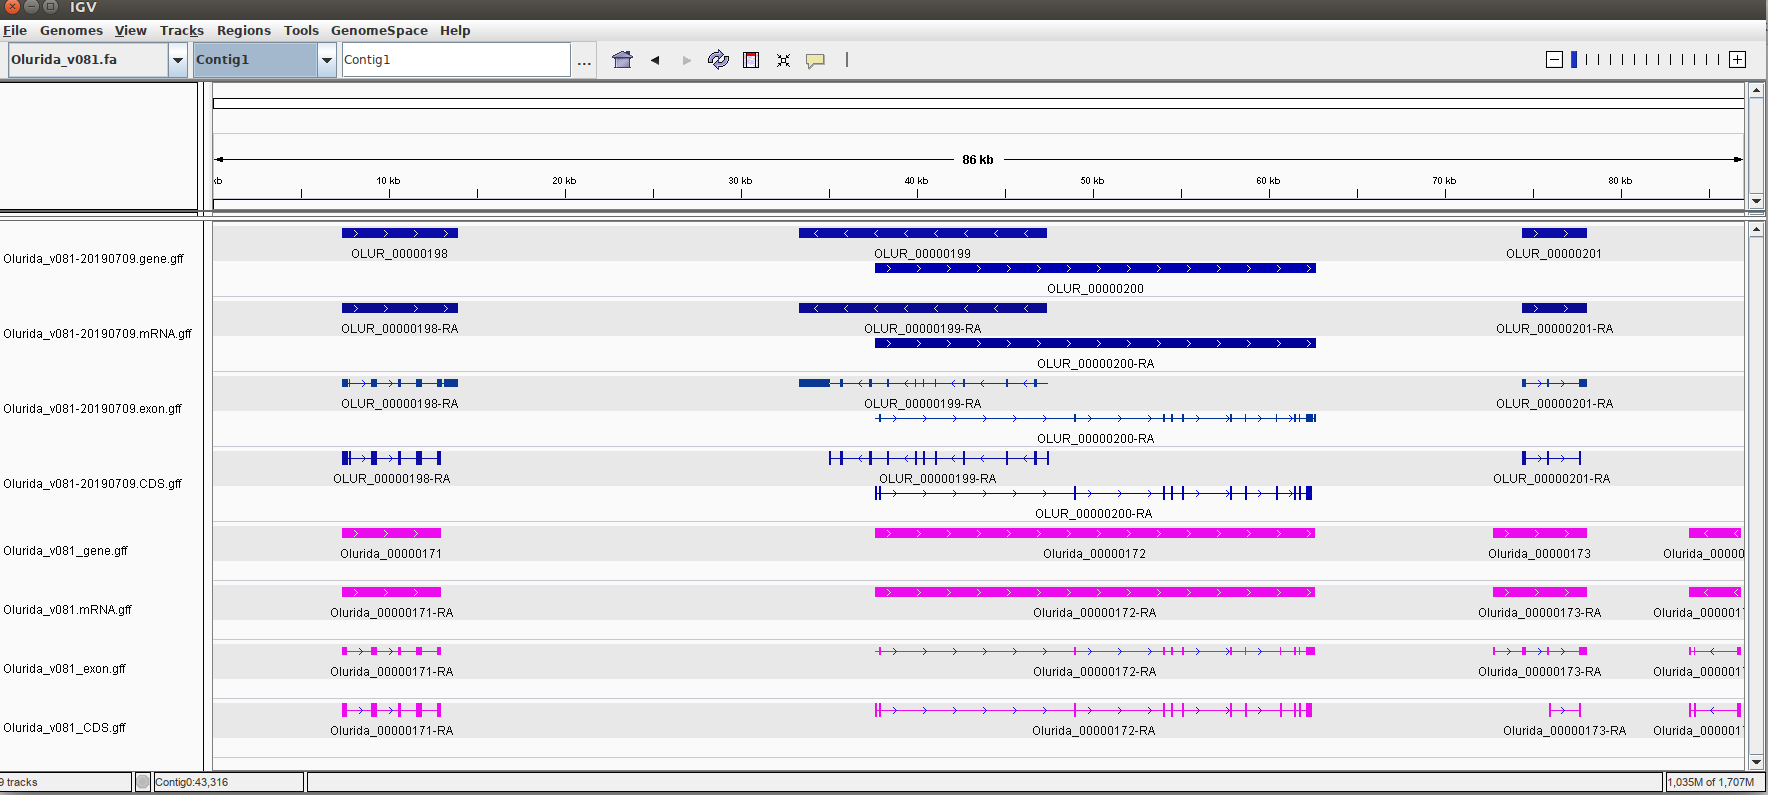 IGV screencap showing additional annotations in current v081